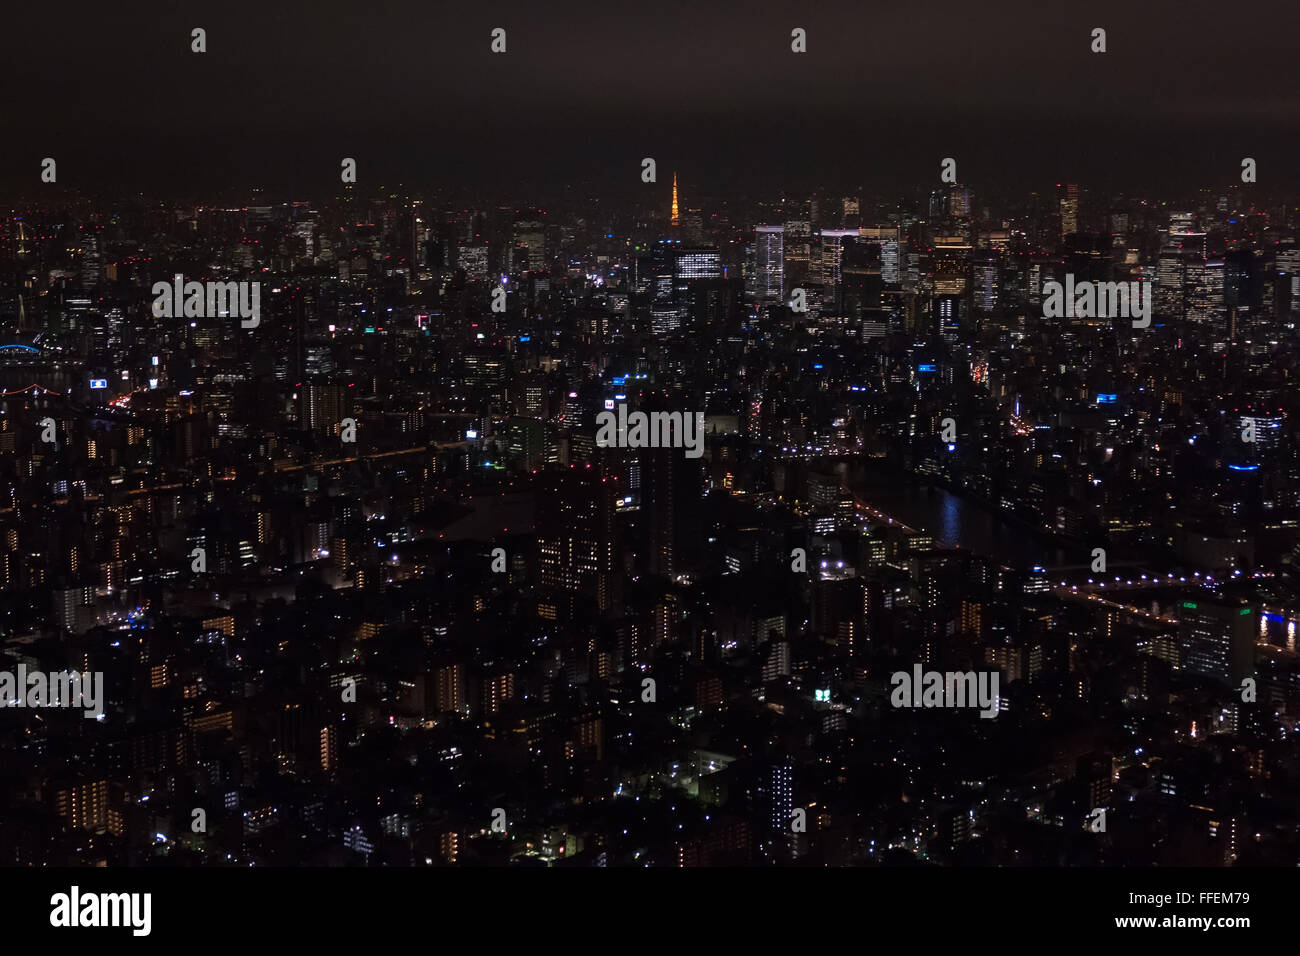 Tokyo, Japan, Asia. Panoramic view of the city at night from Skytree tower. Asian urban landscape, Japanese metropolitan area Stock Photo